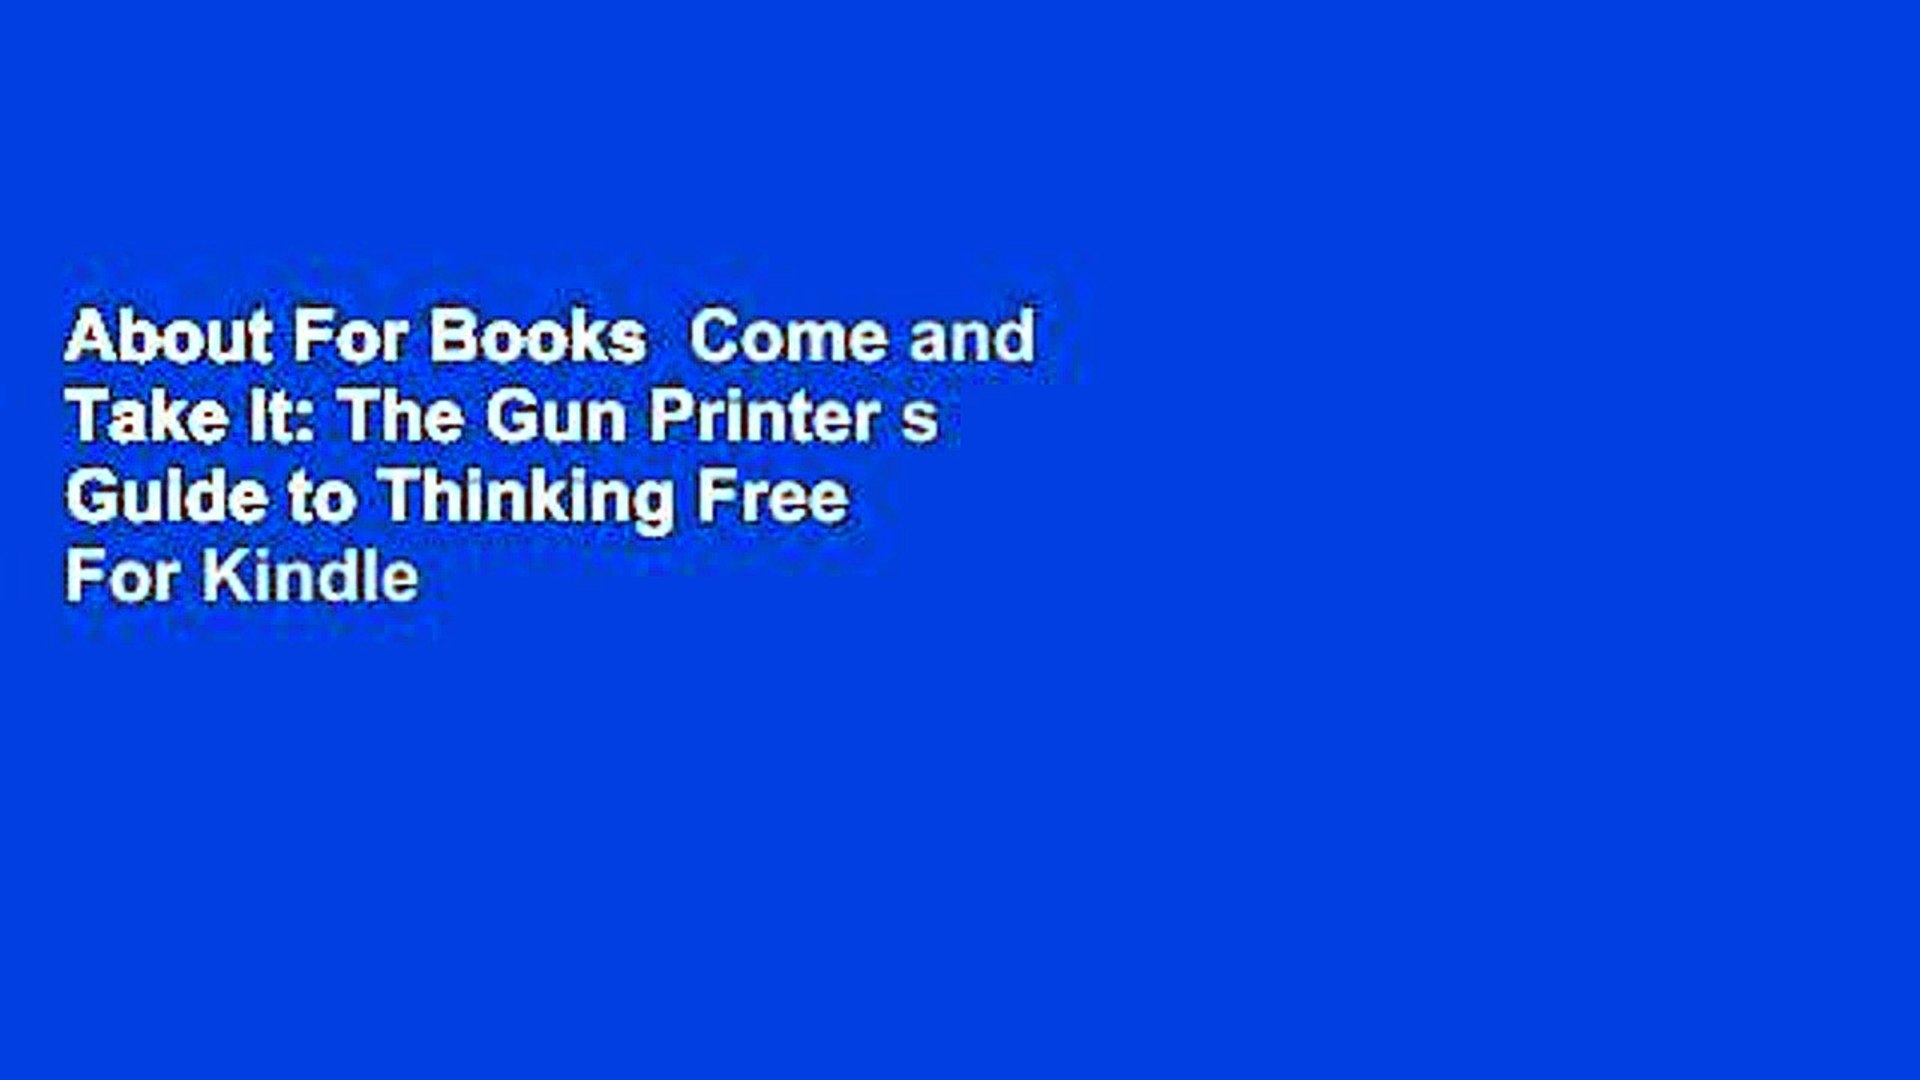 About For Books Come And Take It The Gun Printer S Guide To